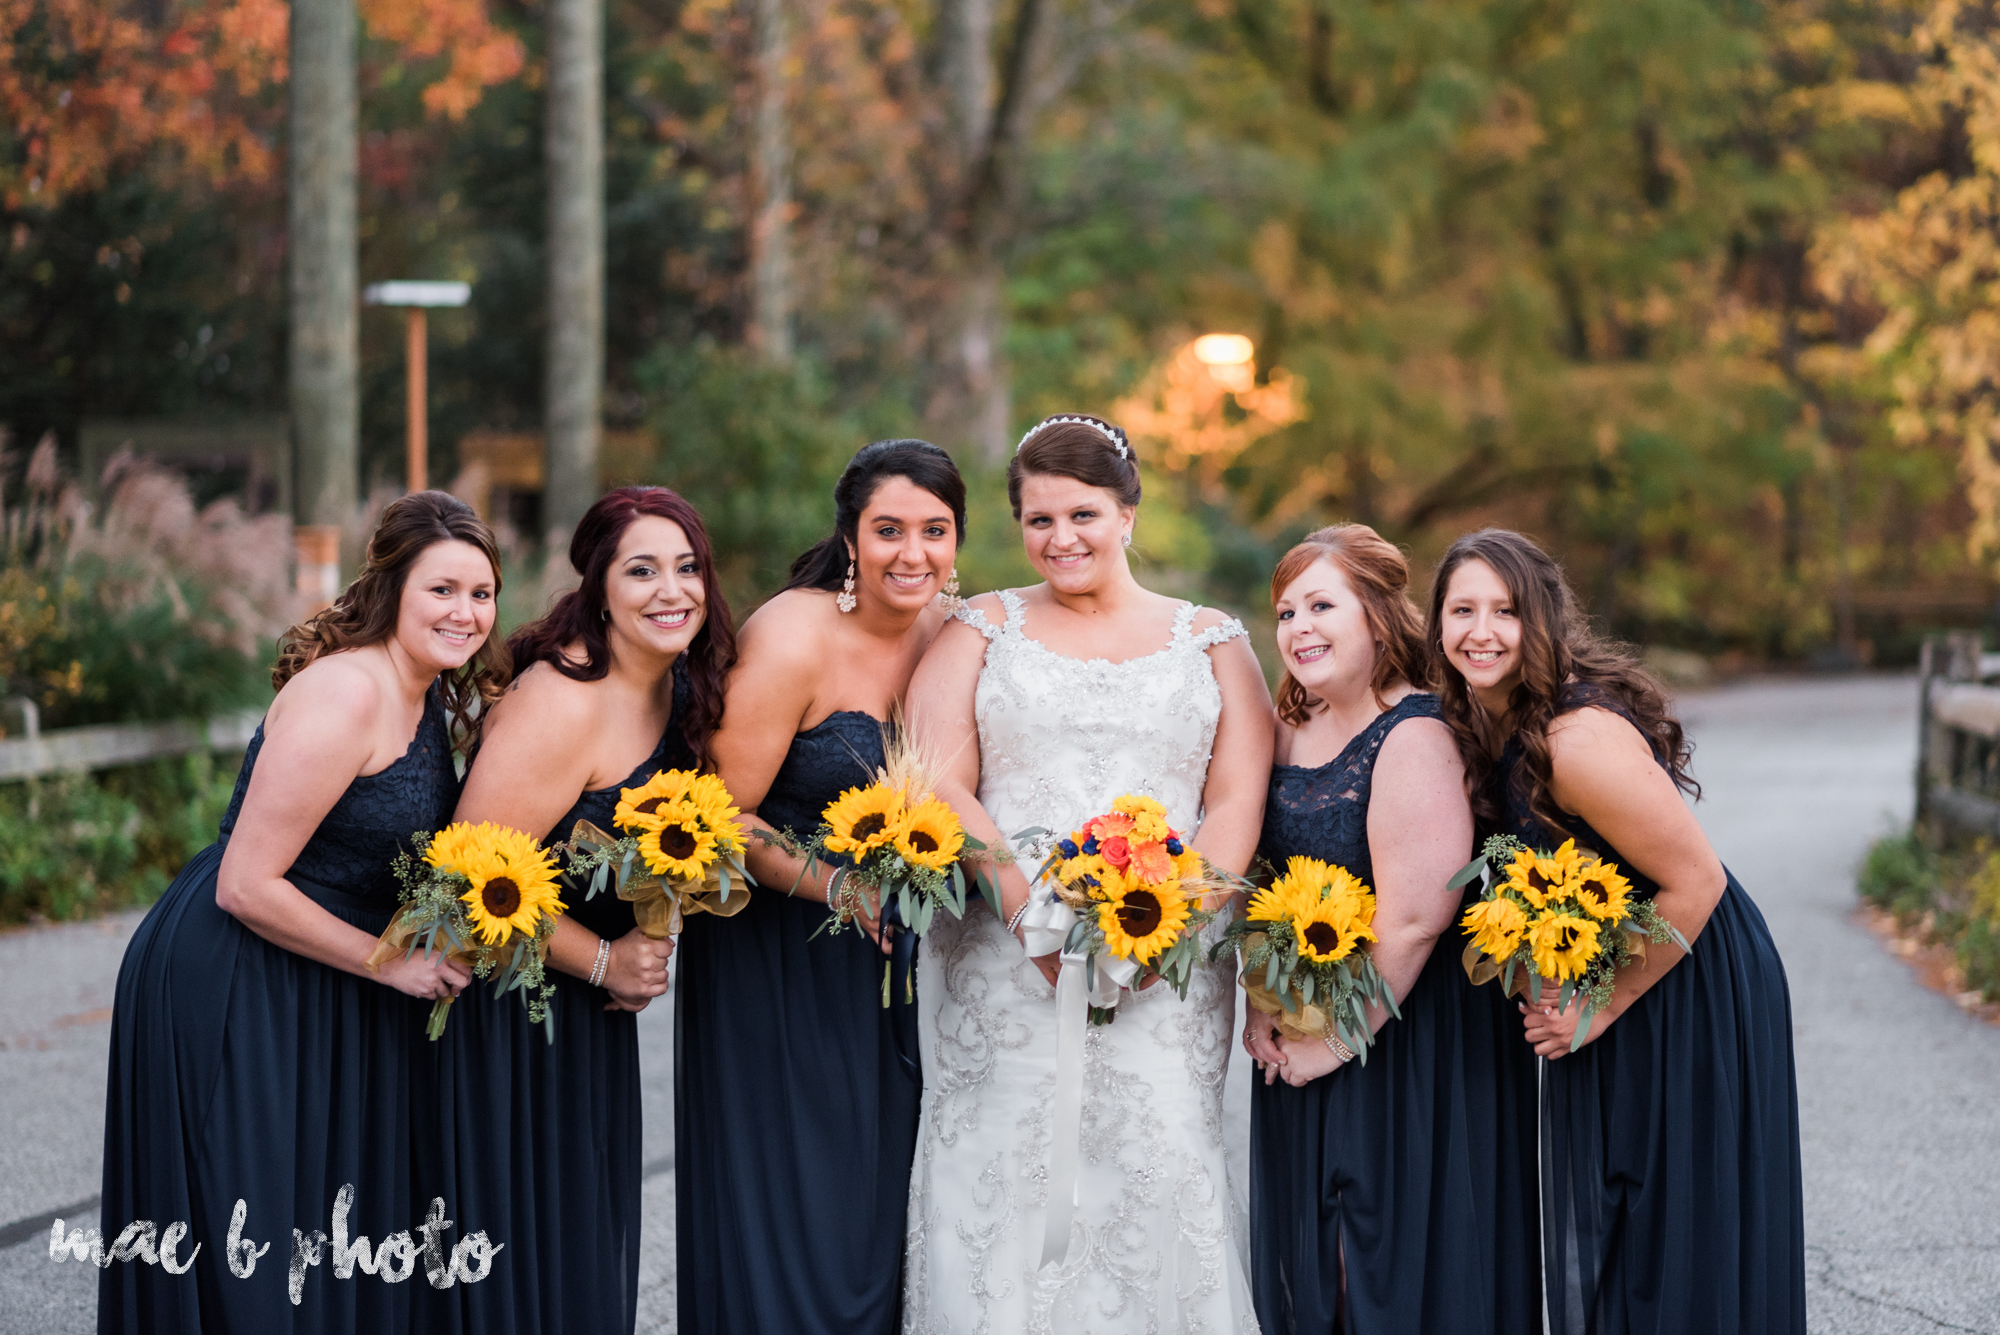 kaylynn & matt's fall zoo wedding at the cleveland metroparks zoo in cleveland ohio photographed by mae b photo-47.jpg